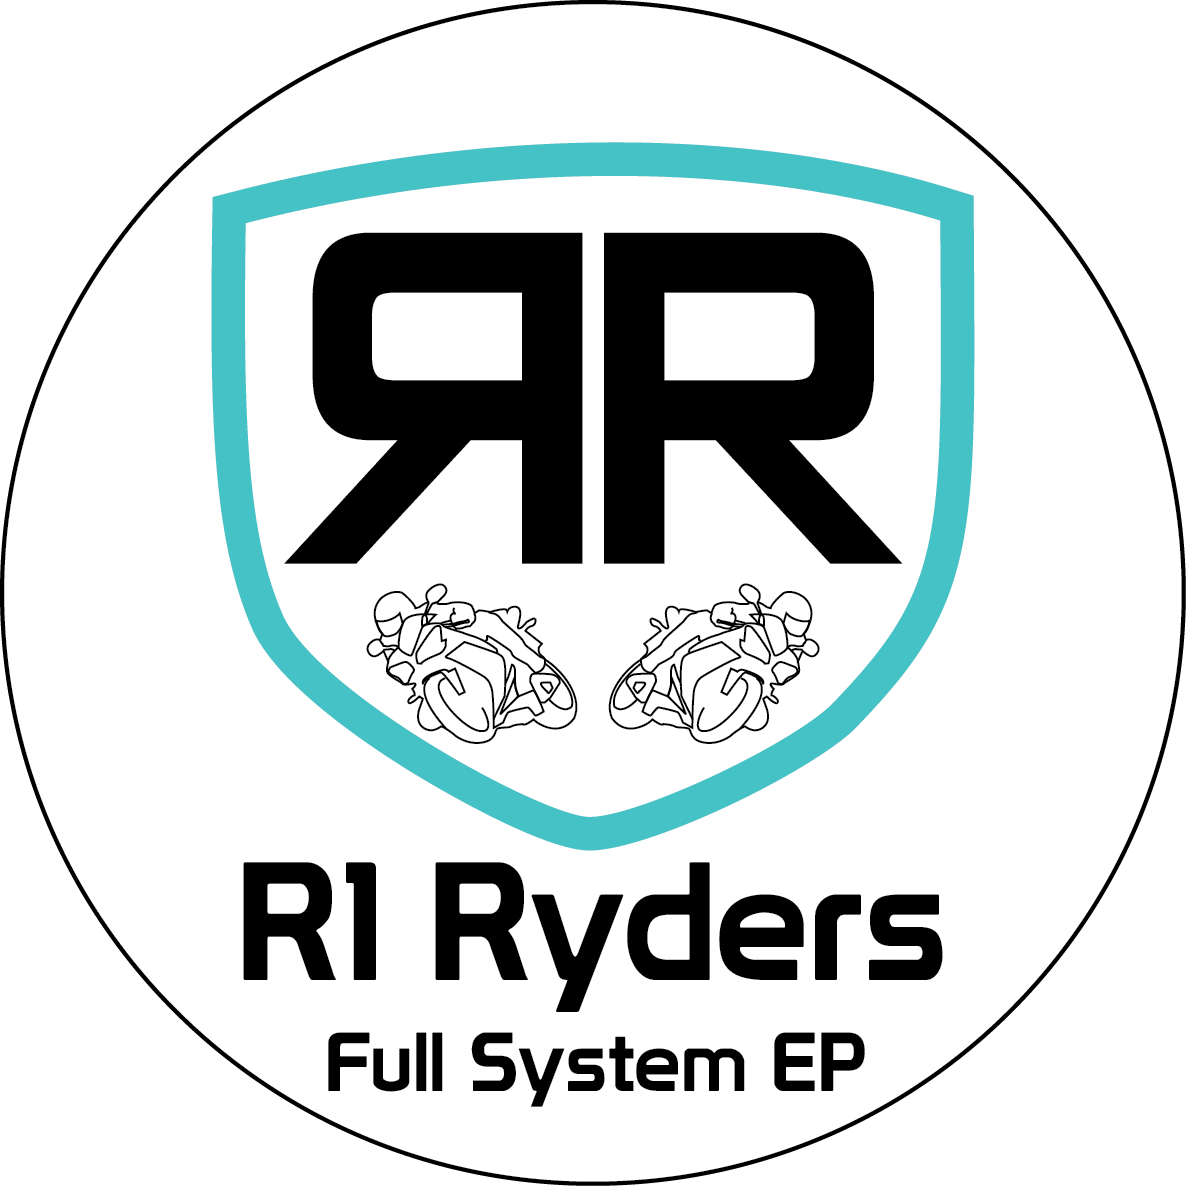 R1 Ryders/FULL SYSTEM EP 12""